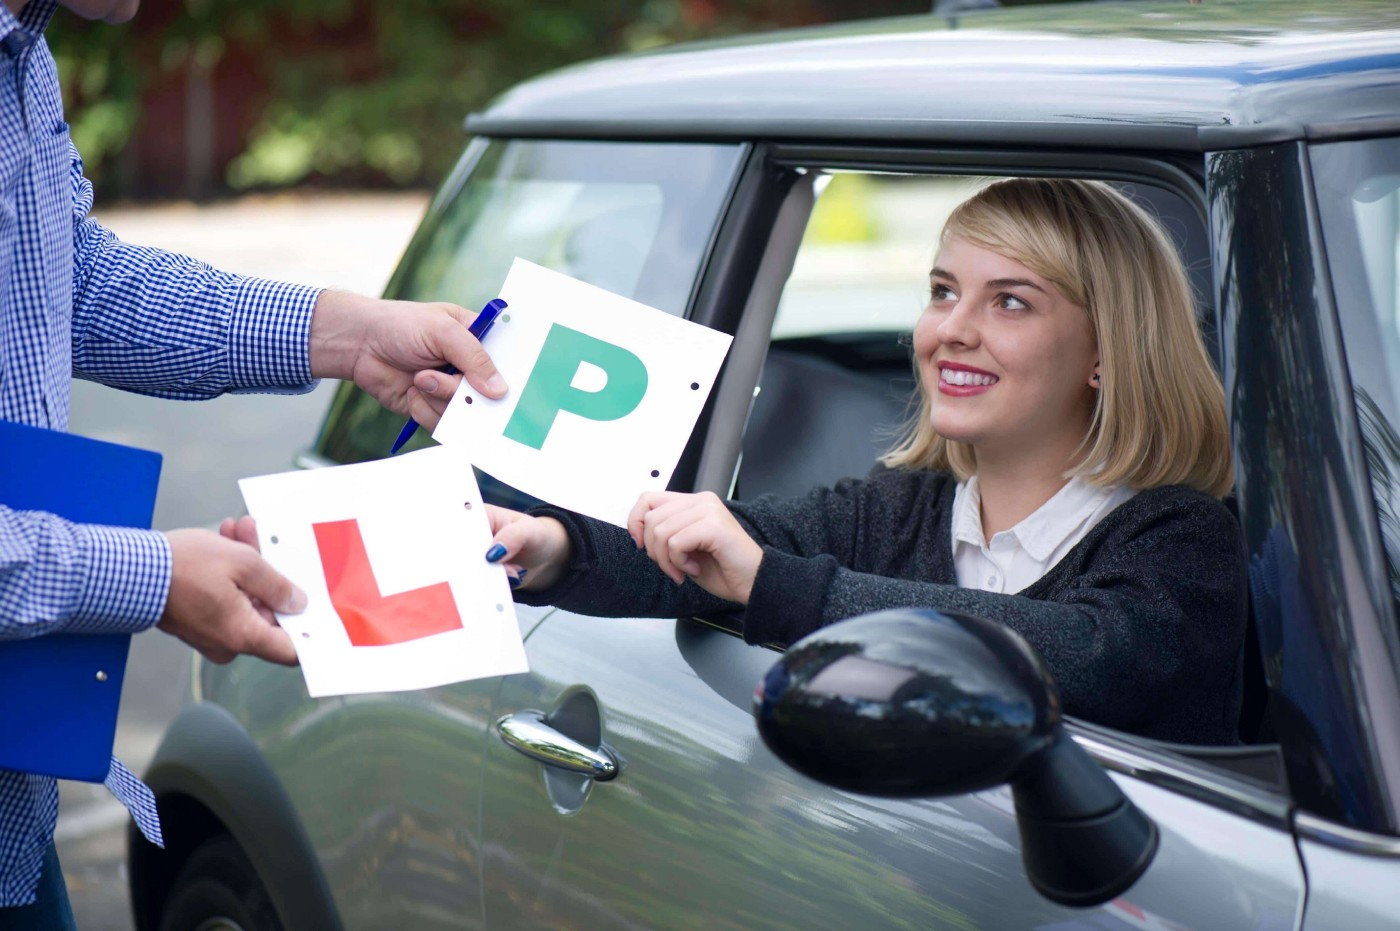 Driving Test Quiz - if you had to retake it, would you pass?